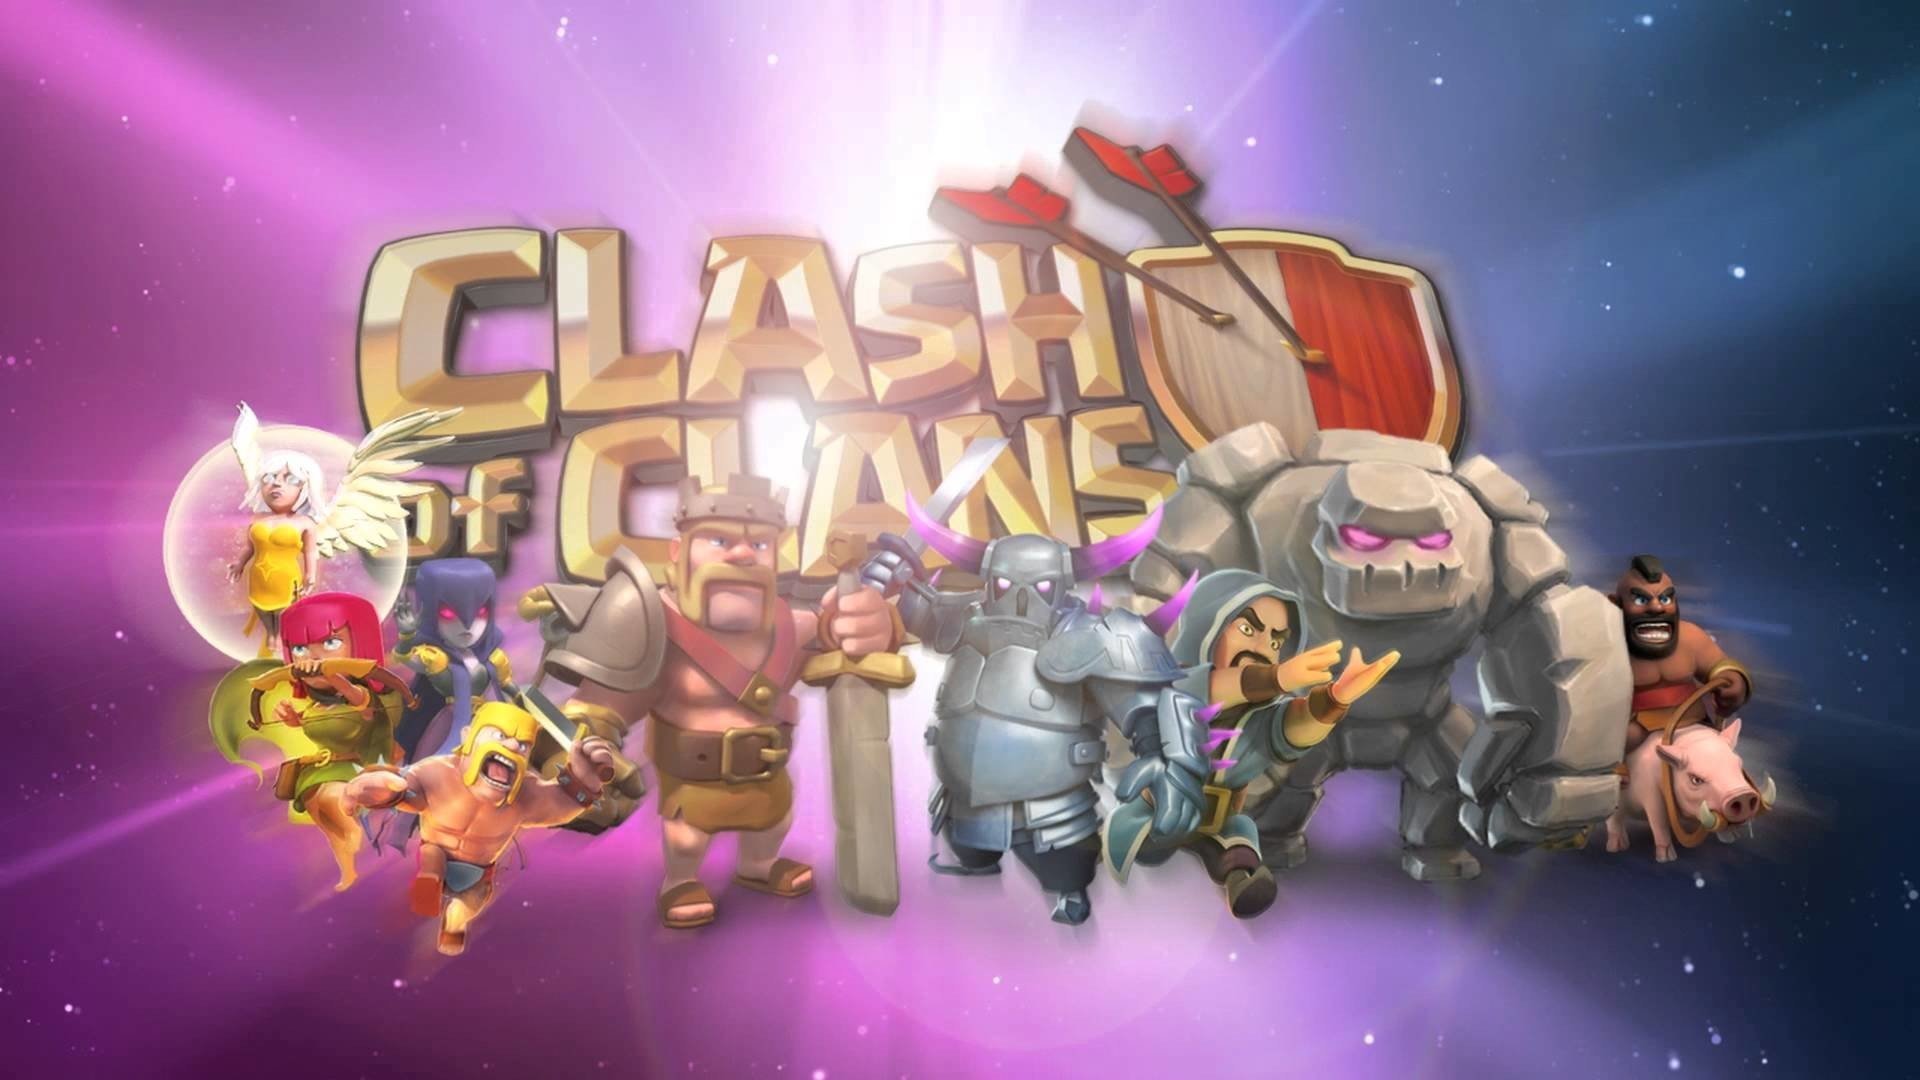 Clash of clans the royal court HD Wallpaper Background Image 1920x1080